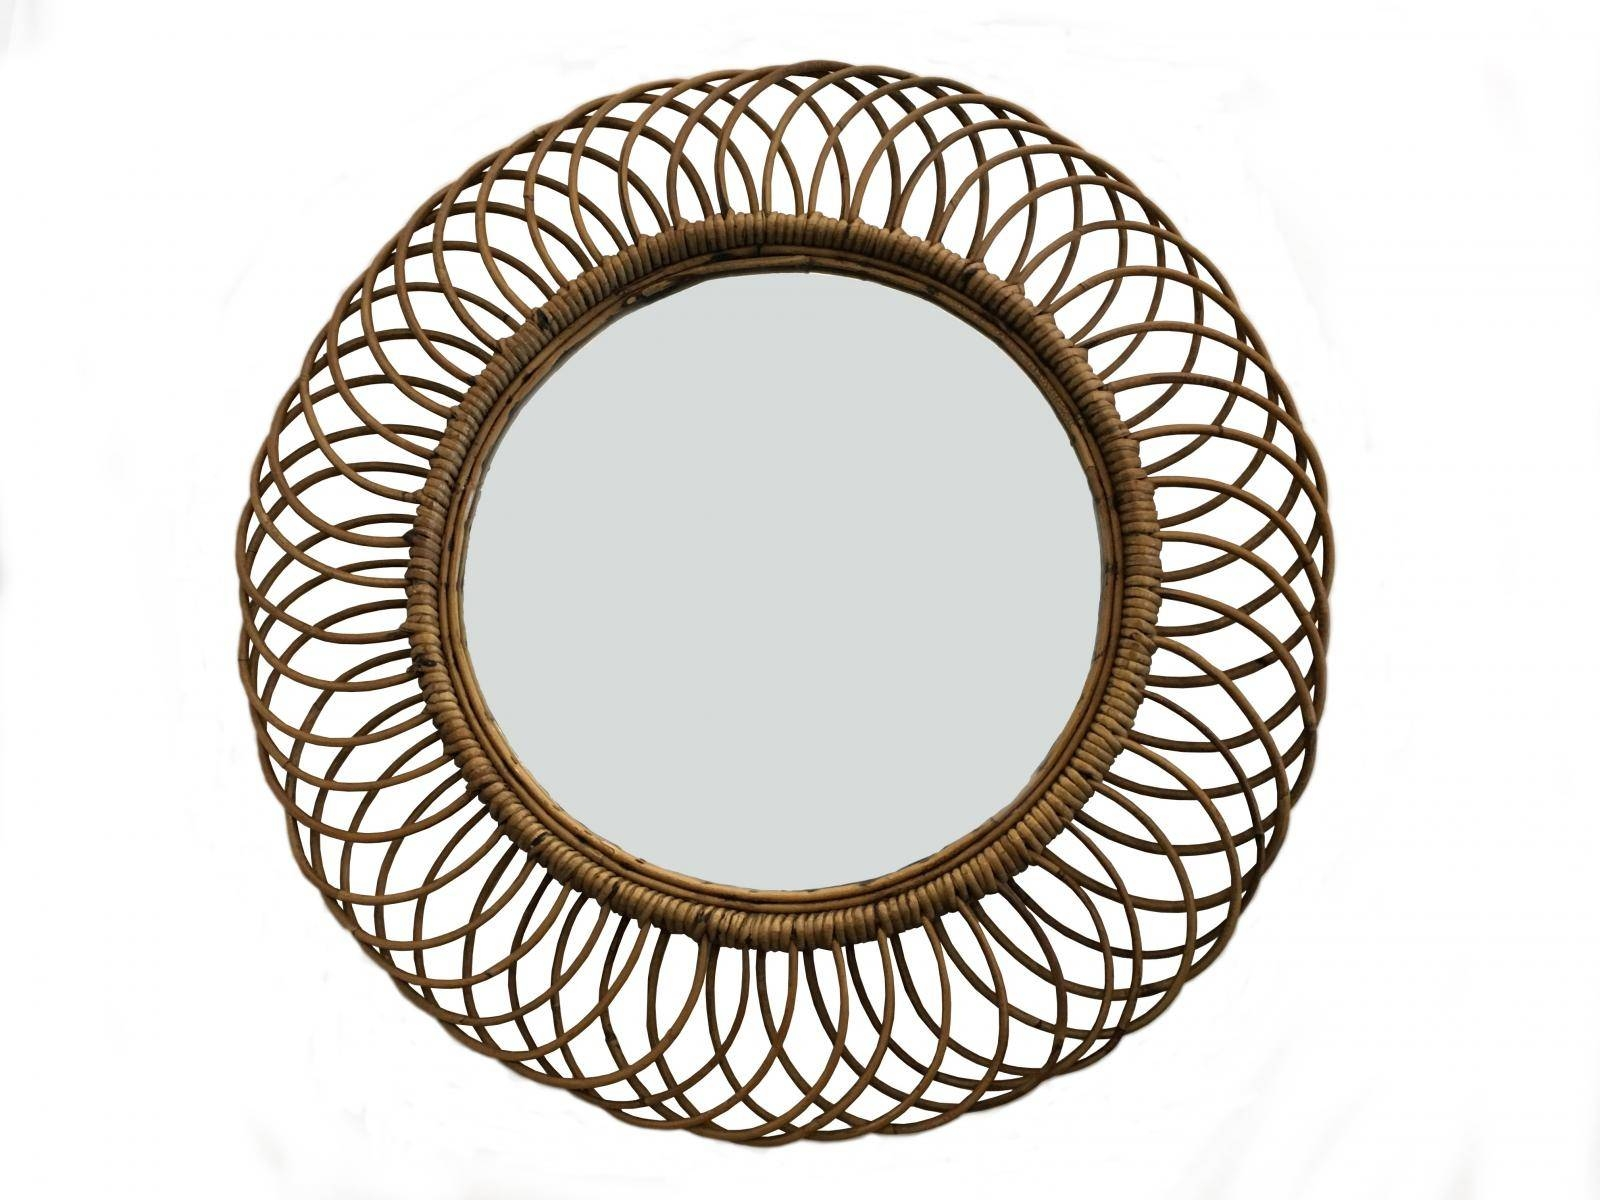 Vintage Wicker Round Wall Mirror, 1960S For Sale At Pamono regarding Vintage Wall Mirrors (Image 24 of 25)